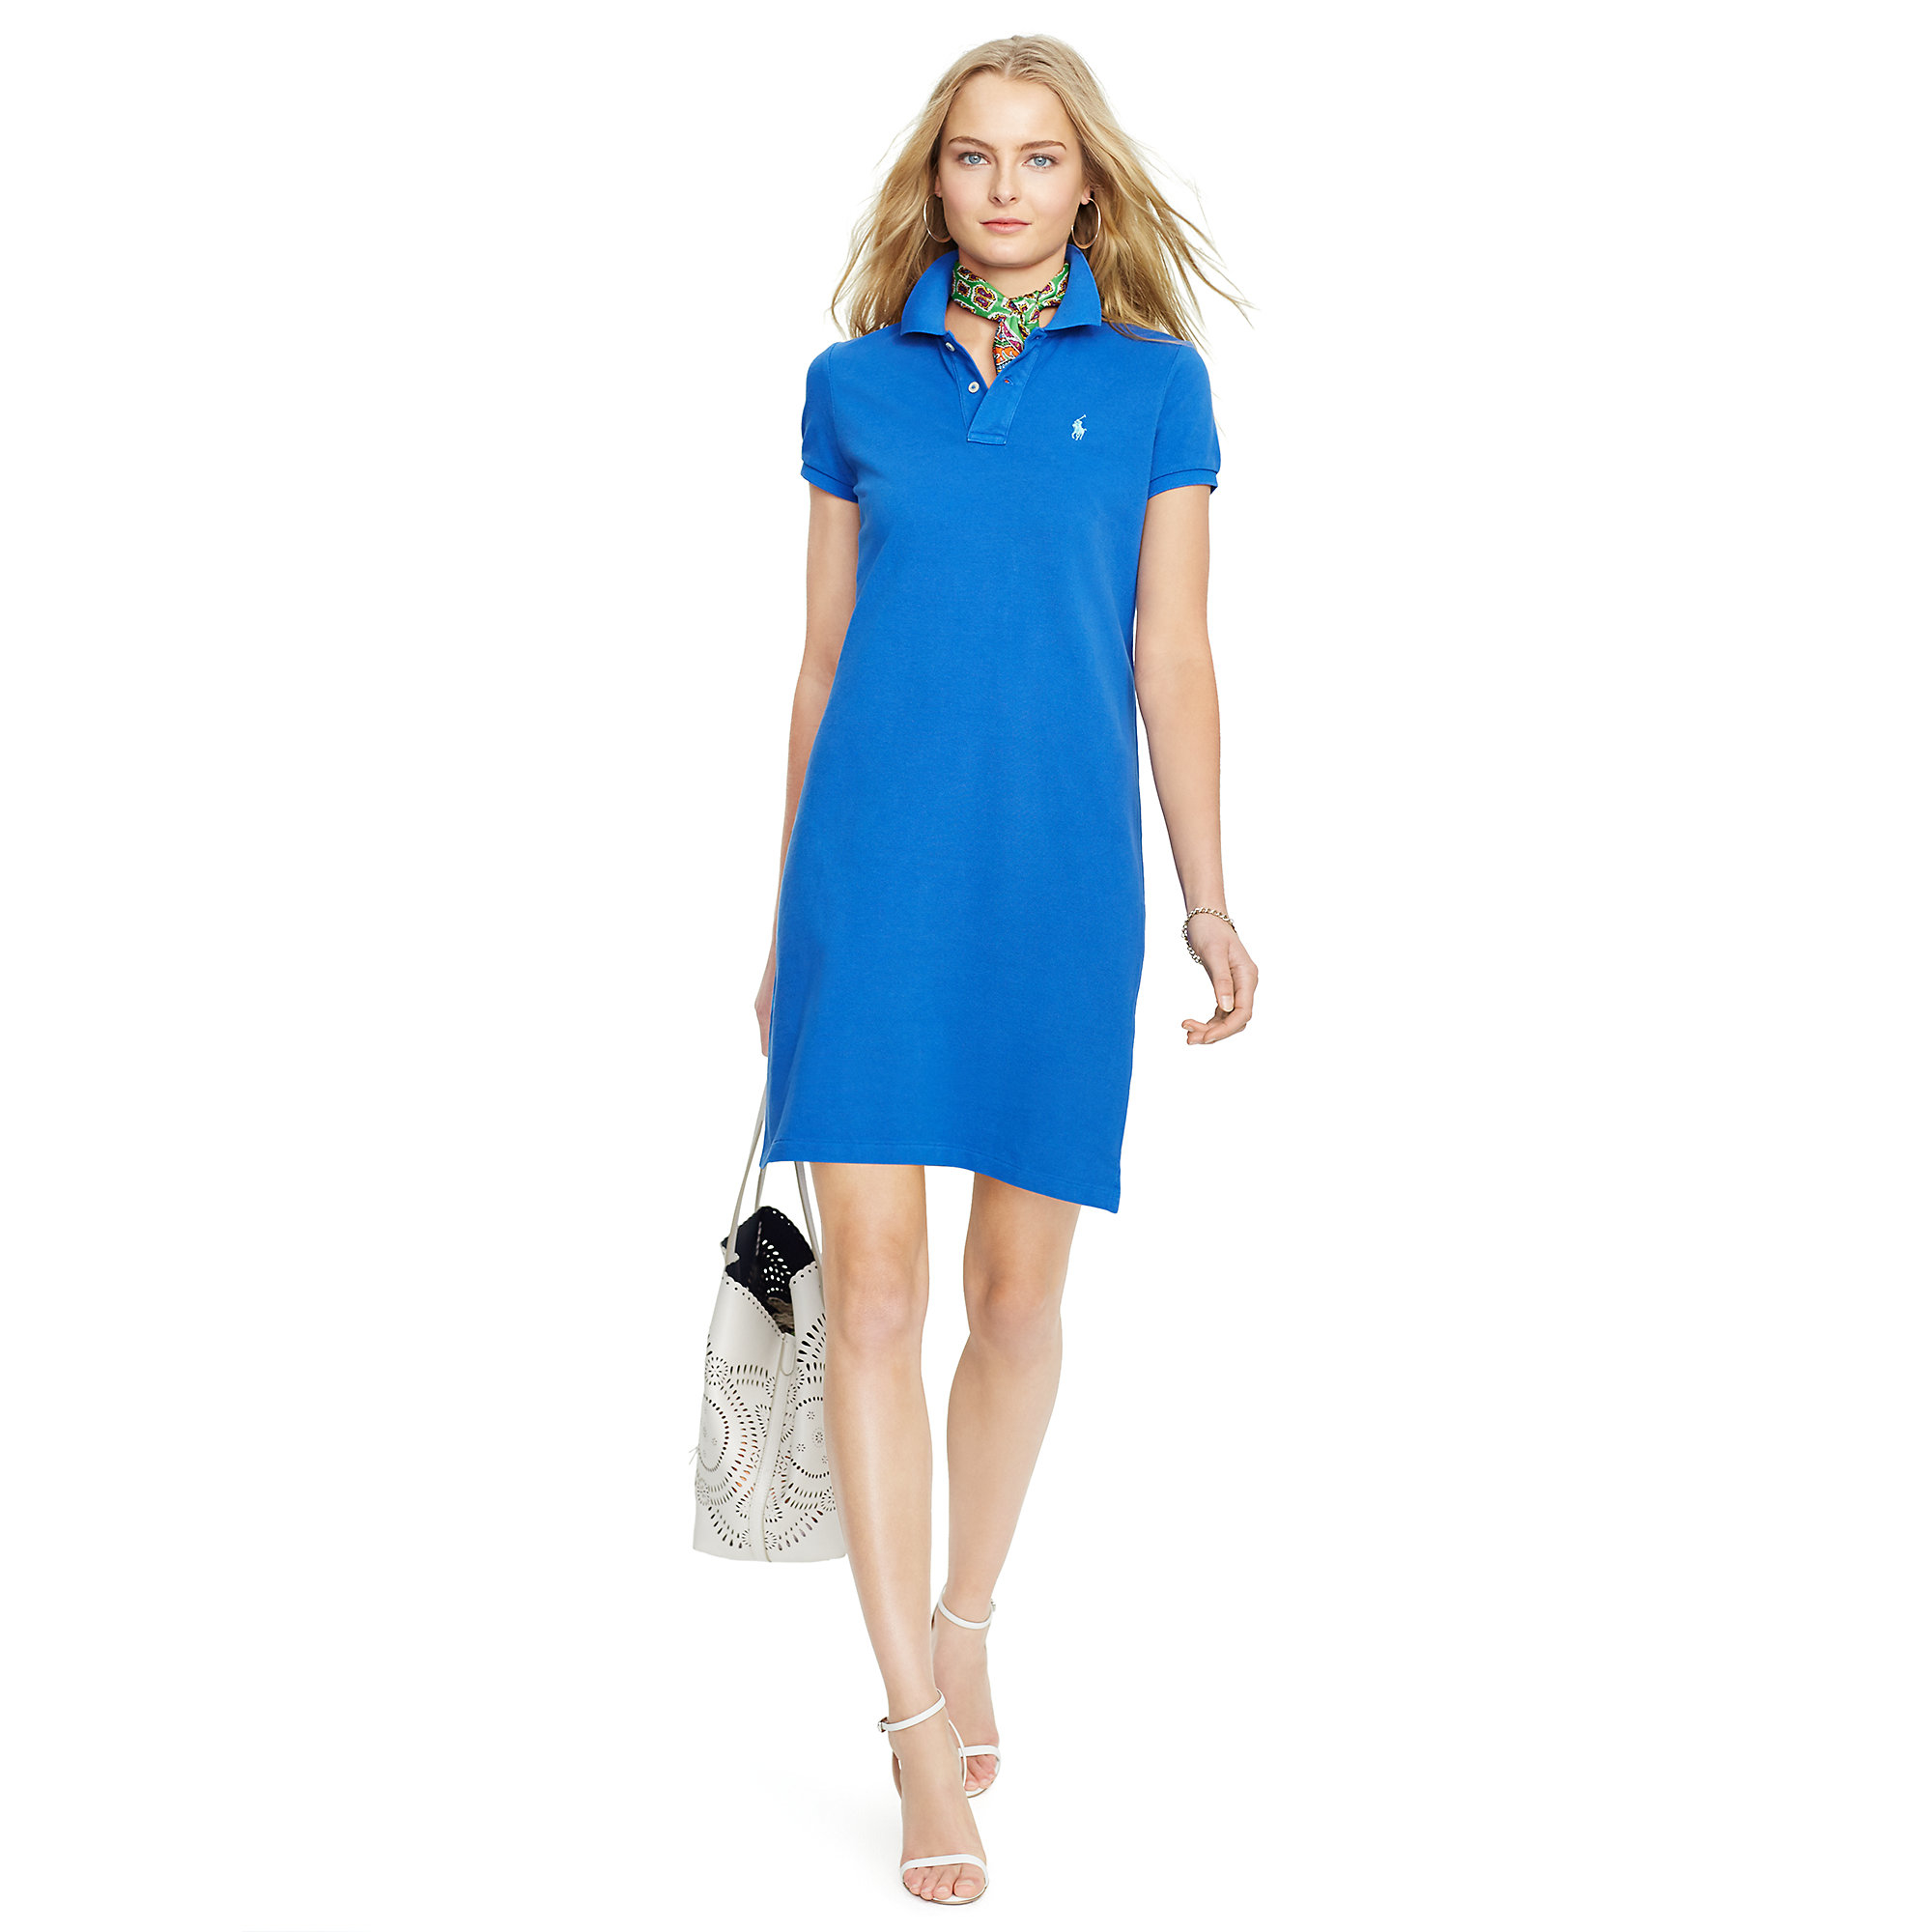 Lyst - Polo Ralph Lauren Cotton Mesh Polo Dress in Blue